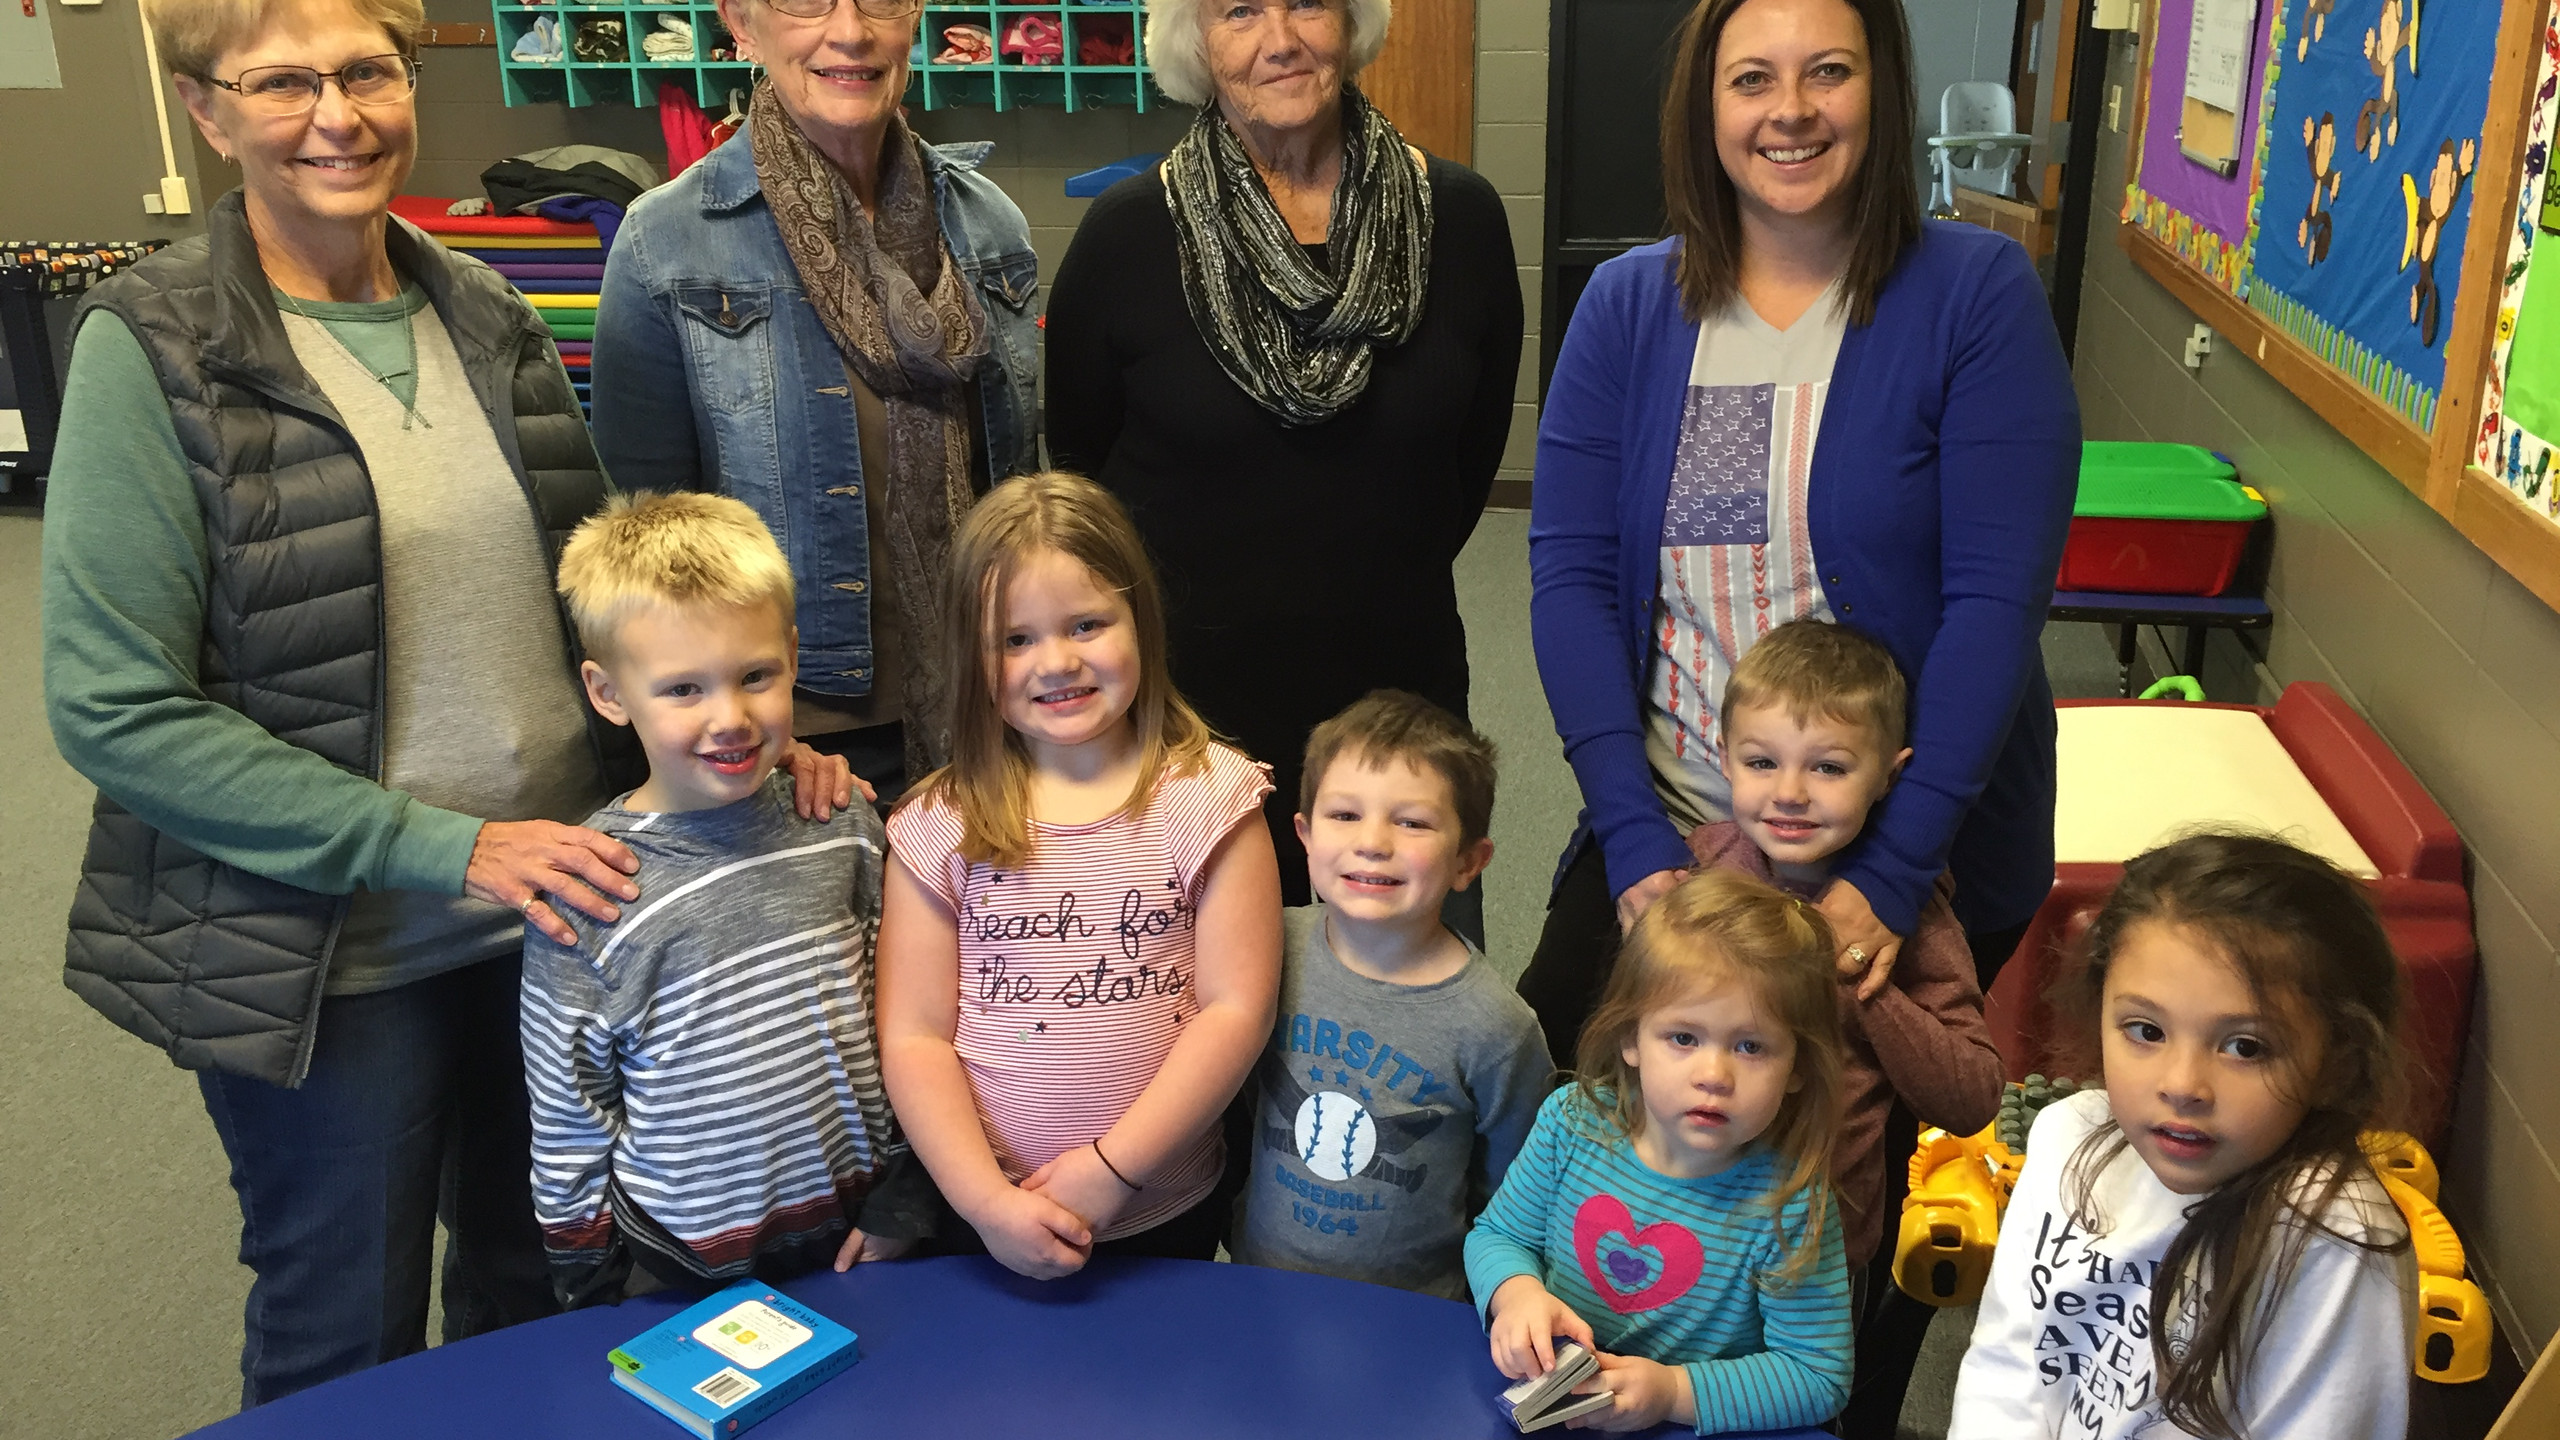 Connie Schmitz, Jeanne Applebee, and Dolly Spitzenberger of the Listen and Learn Club along with Jamie Divine, board member of the Cougar Cubs Daycare with children William Tech, Brielle Cahoy, Maddox Fuhrer, Max Divine, Bridget Cahoy, and Aubrey Piper enjoy time at the daycare.